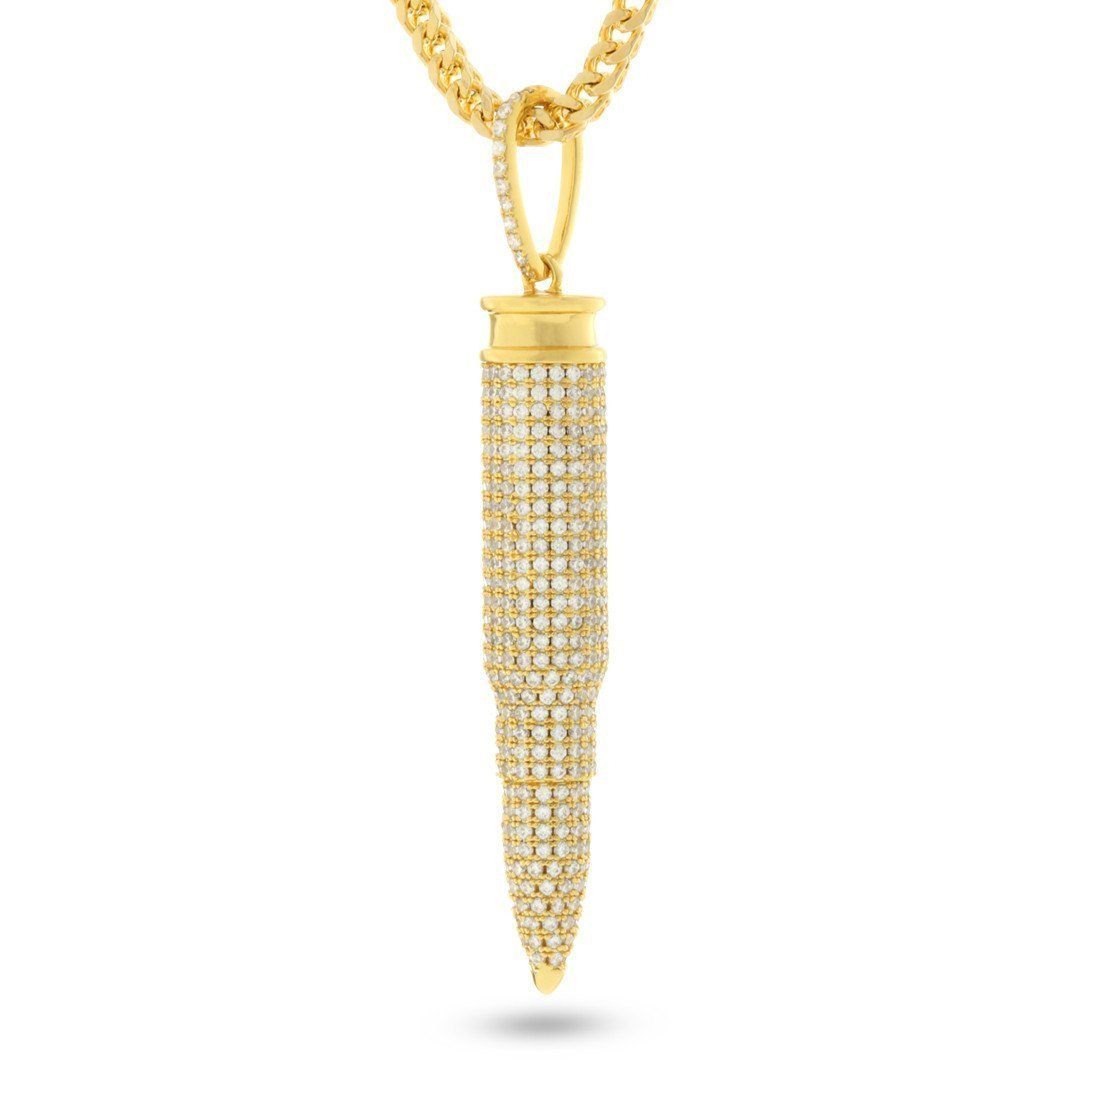 Pendants - 14K Gold .223 Caliber Bullet Necklace -   jetcube